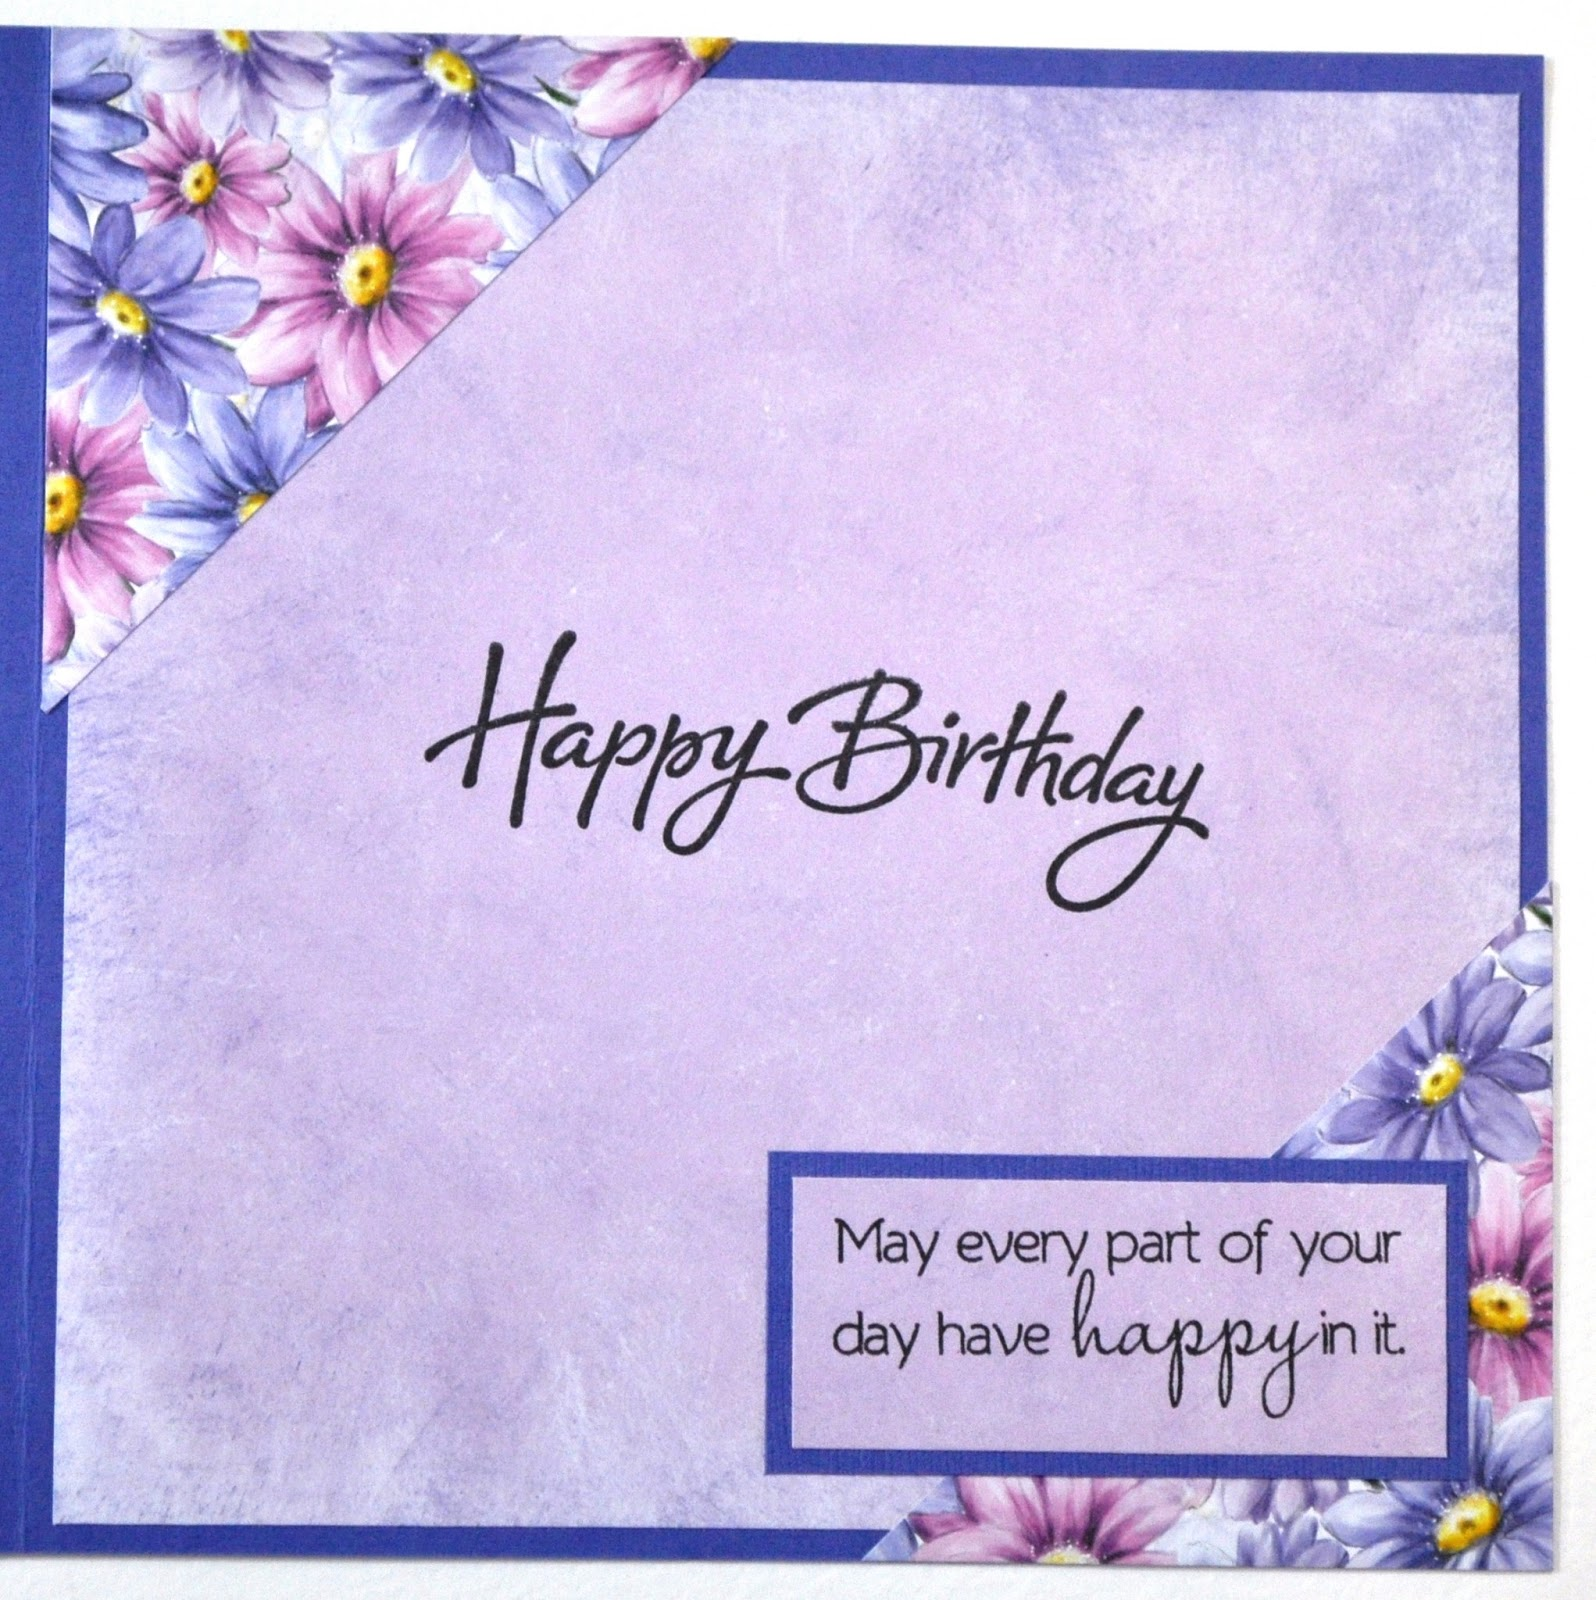 Birthday Card To Mom From Daughter – Free Birthday Card for Mom